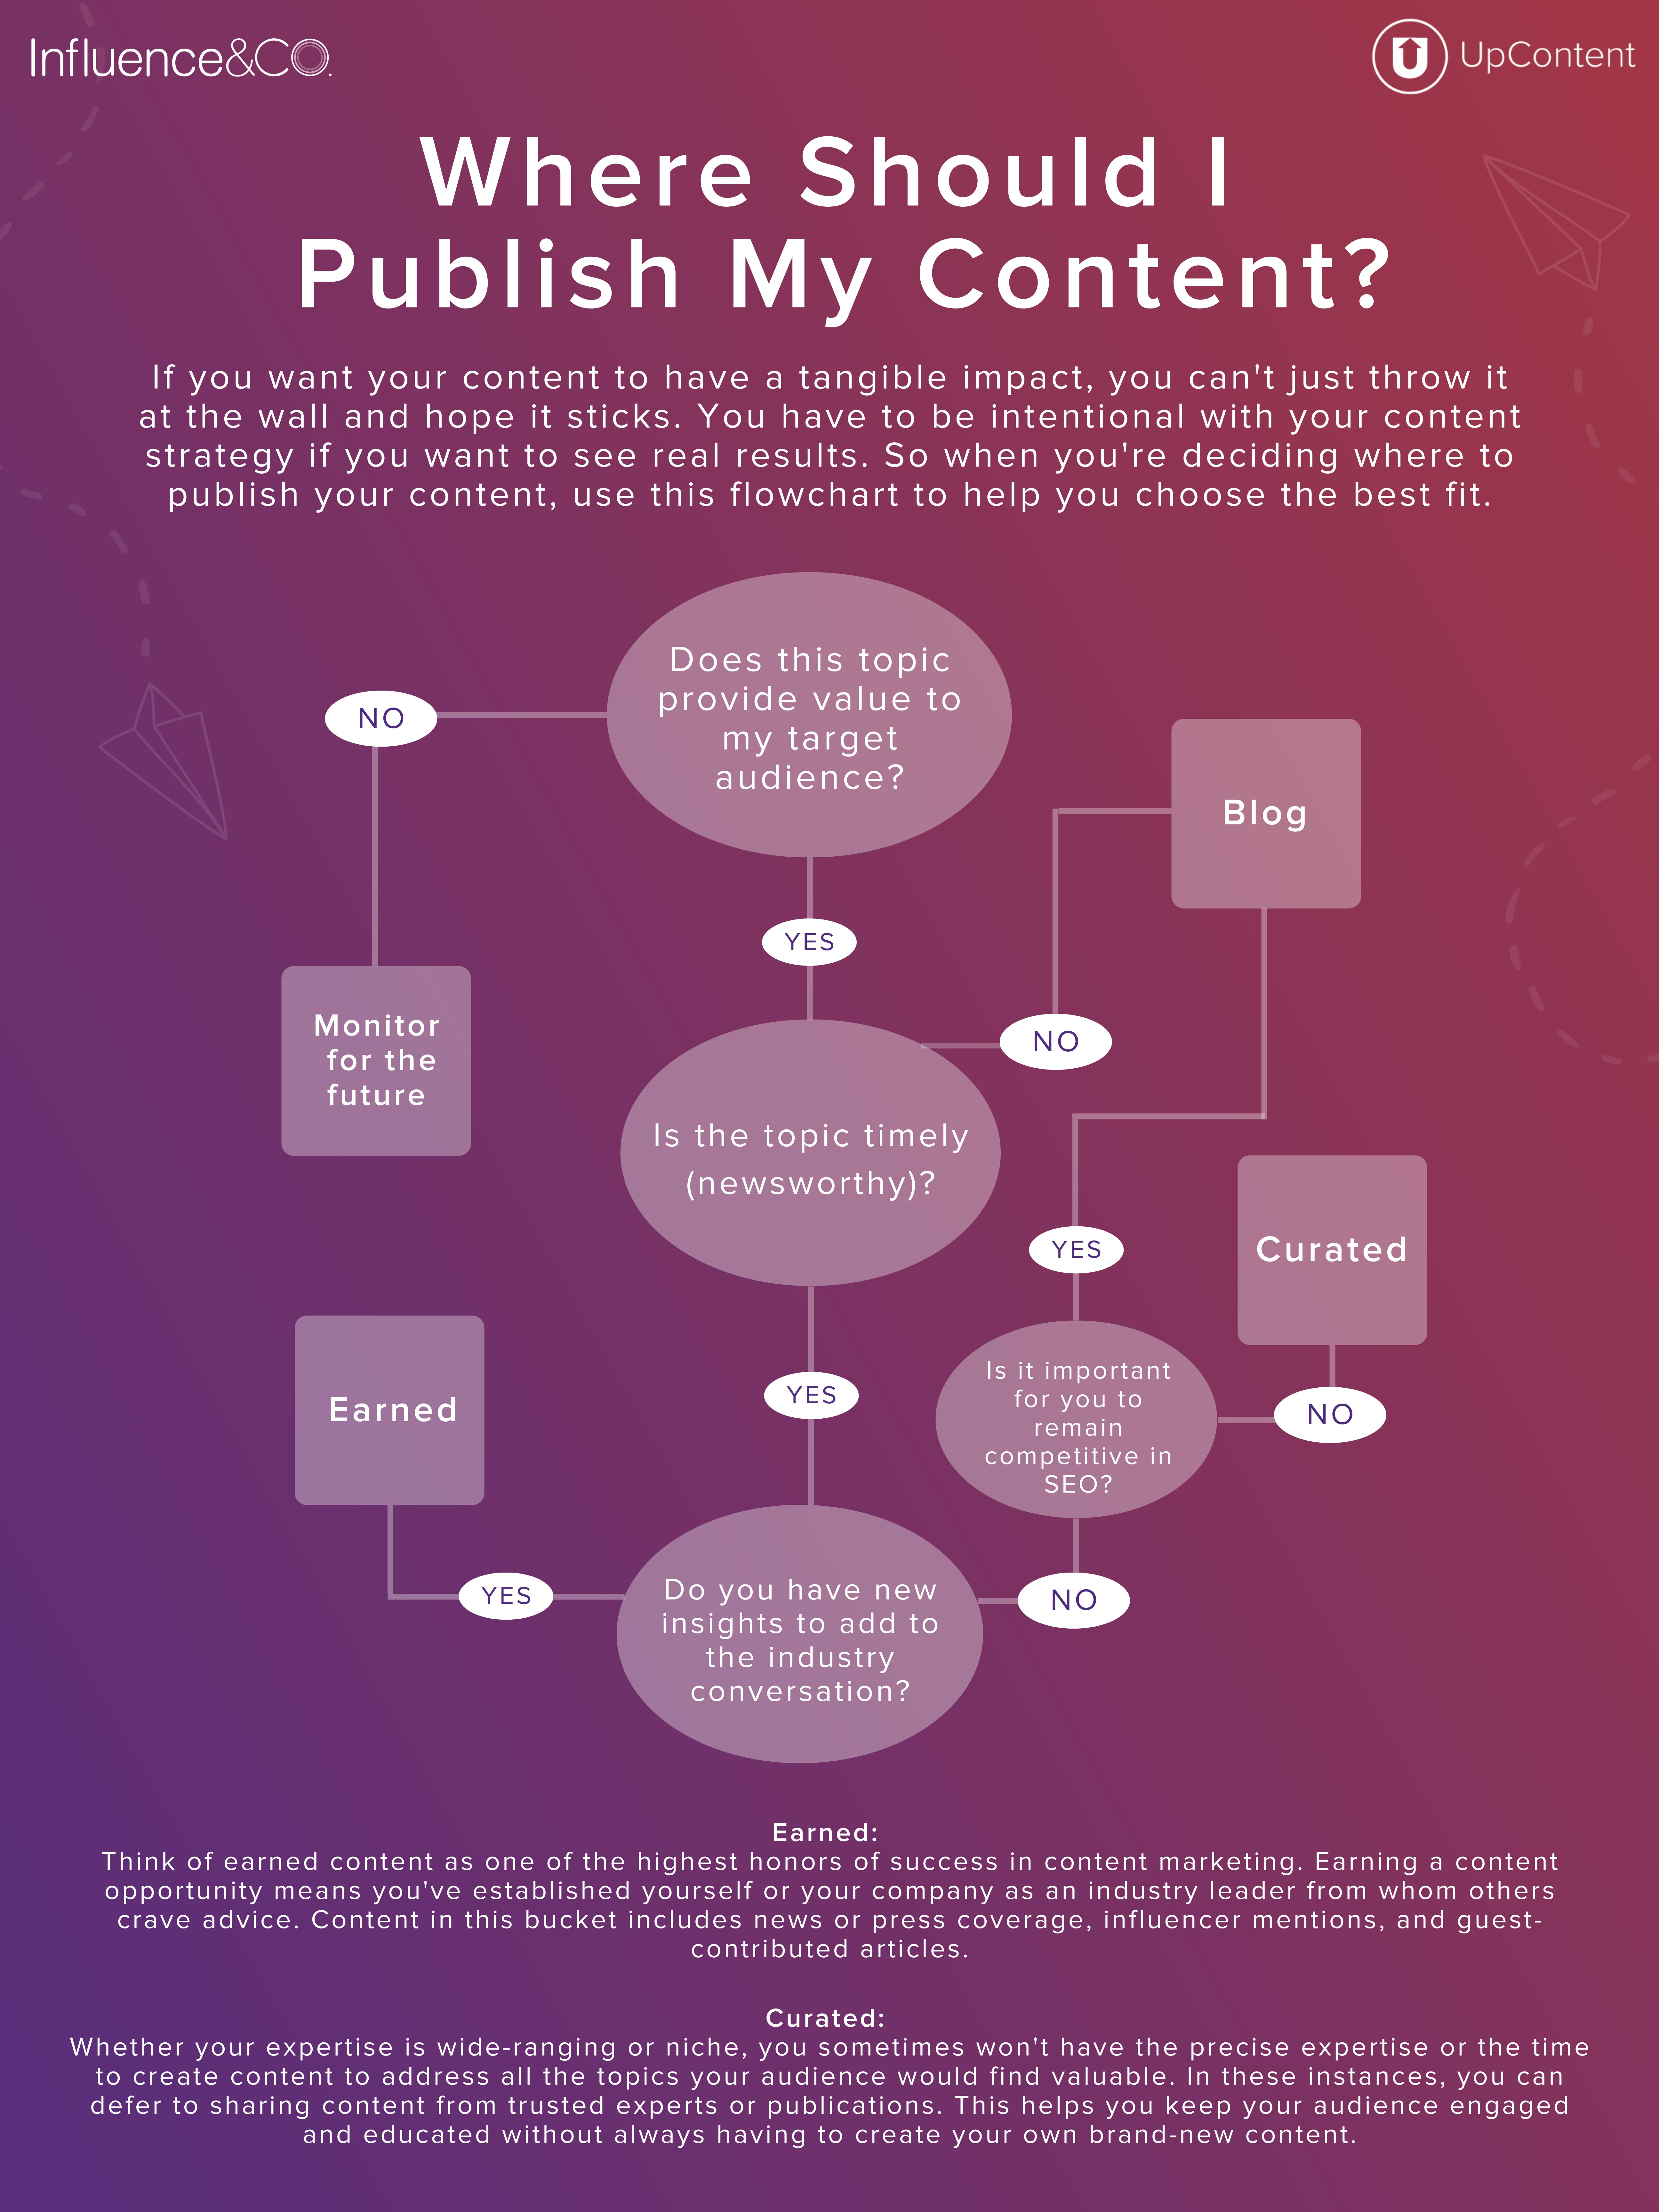 Where Should I Publish My Content Infographic